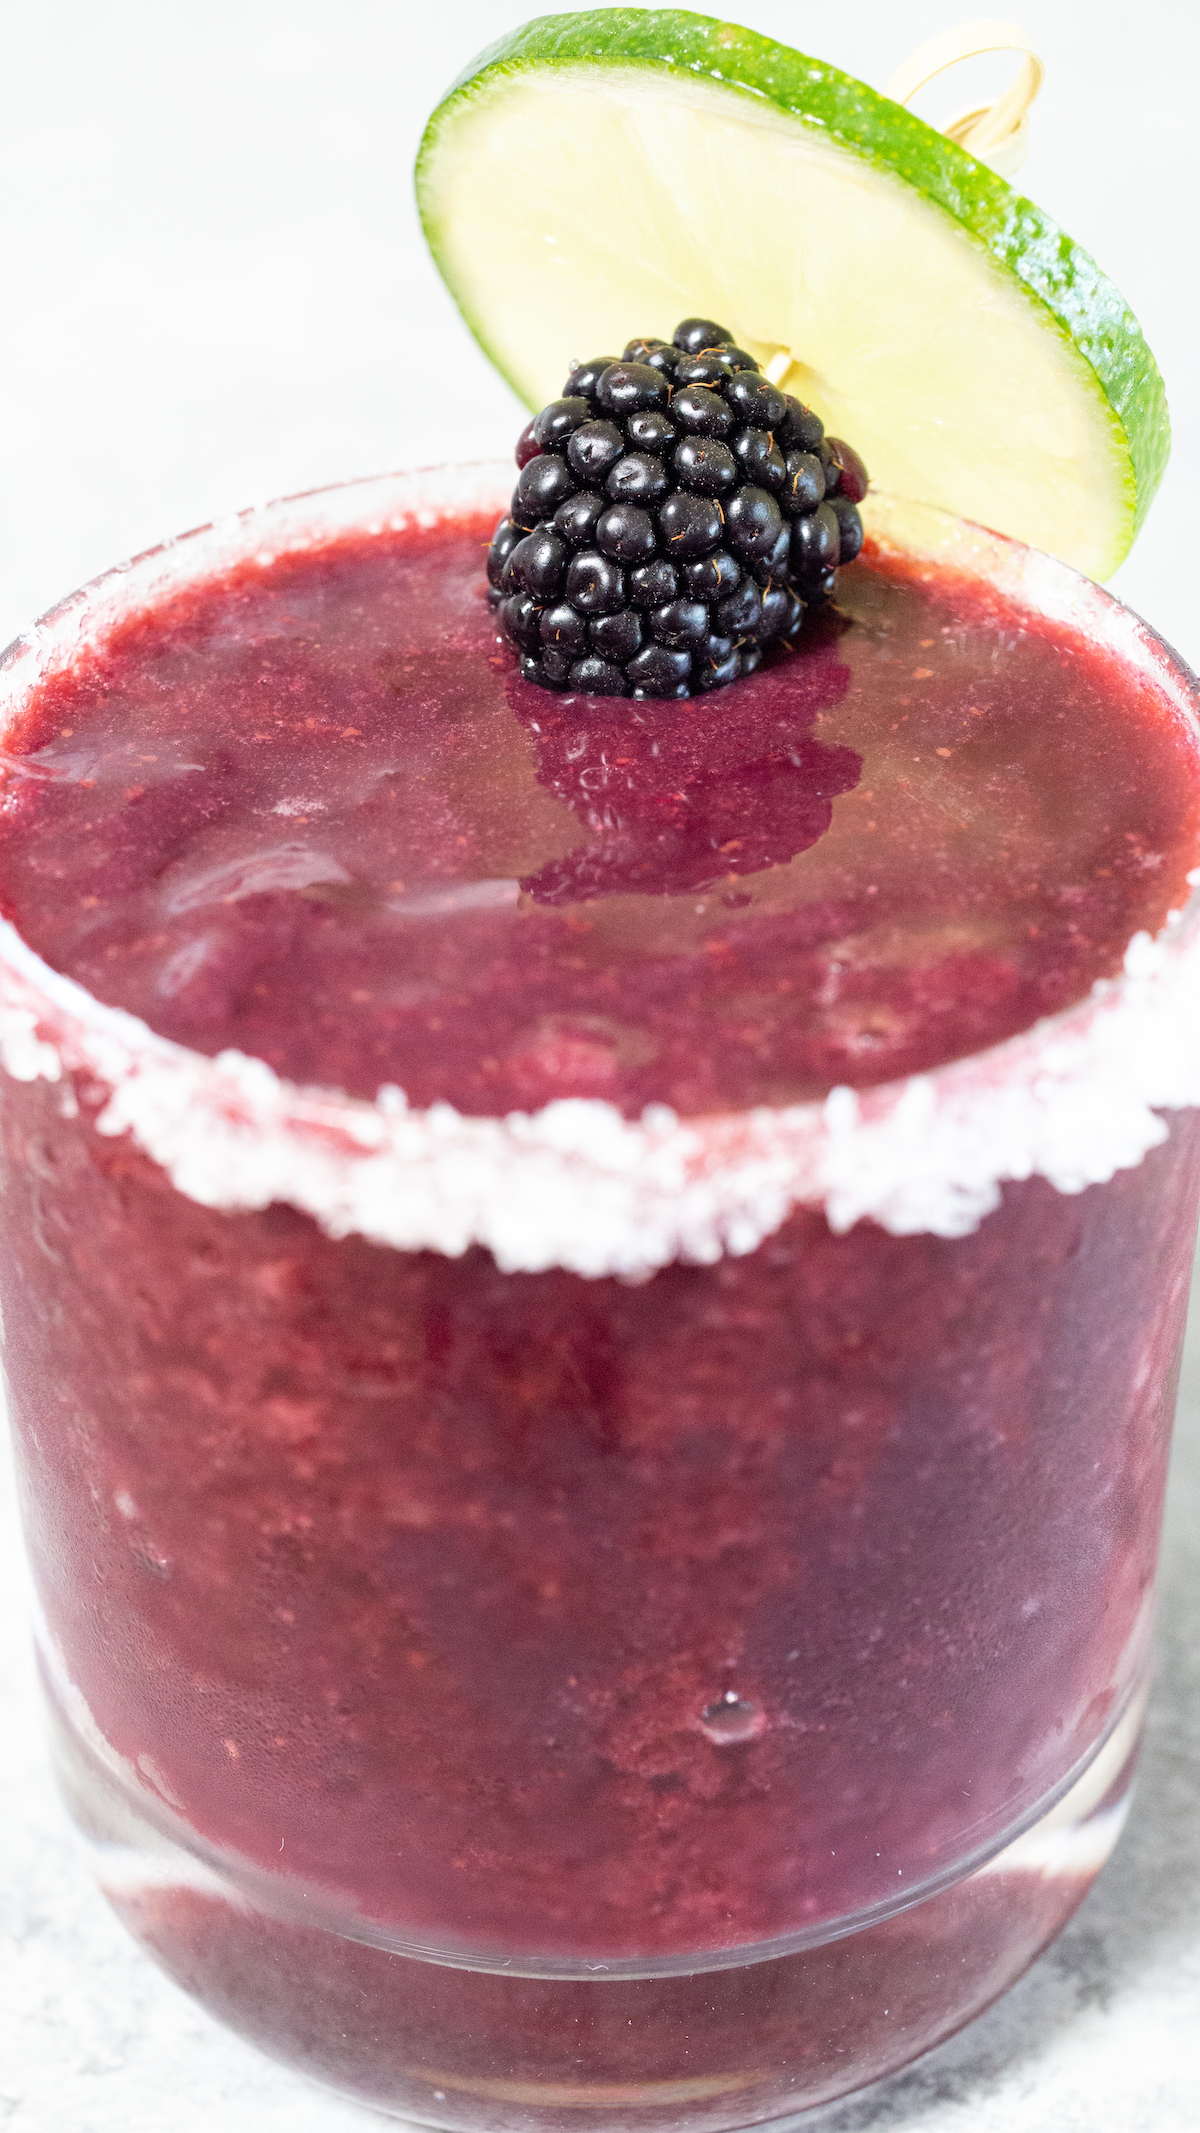 A purple blackberry margarita in a short glass garnished with a blackberry and lime wheel.